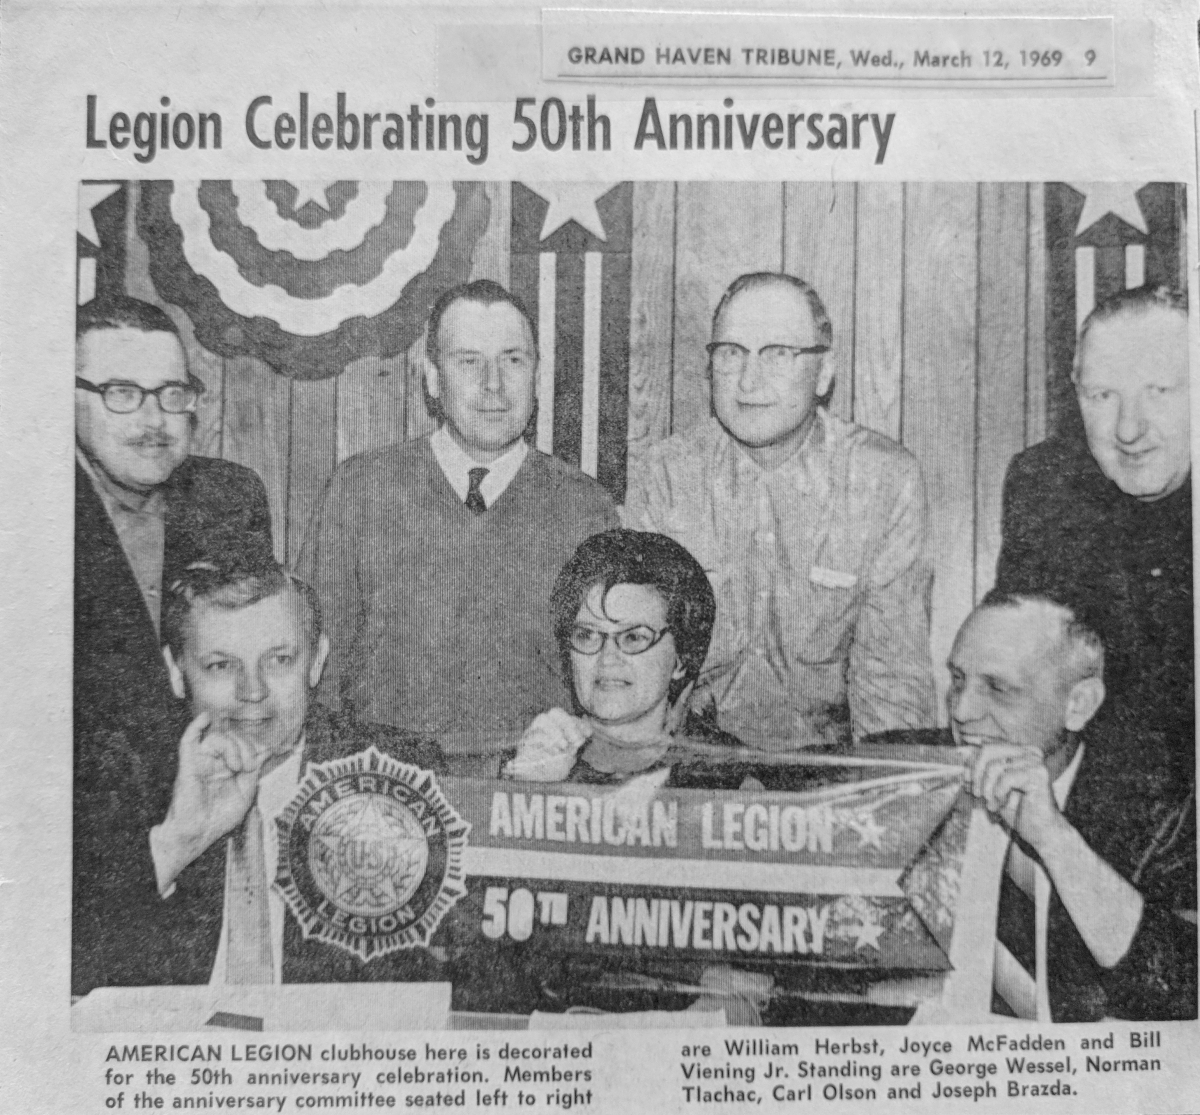 Charles A. Conklin Post 28 Celebrates American Legion's 50th Anniversary